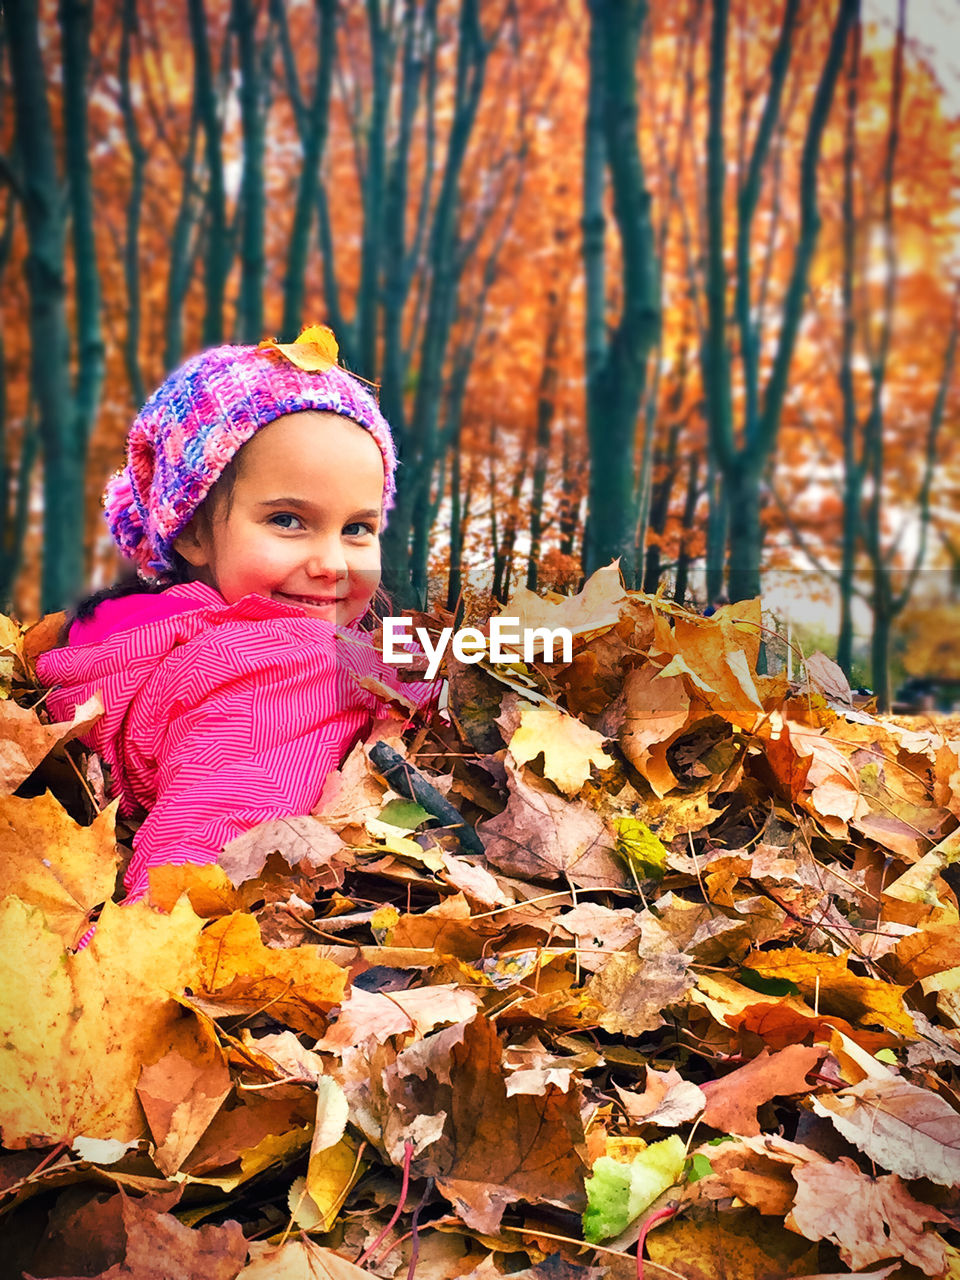 GIRL IN AUTUMN LEAVES ON TREE